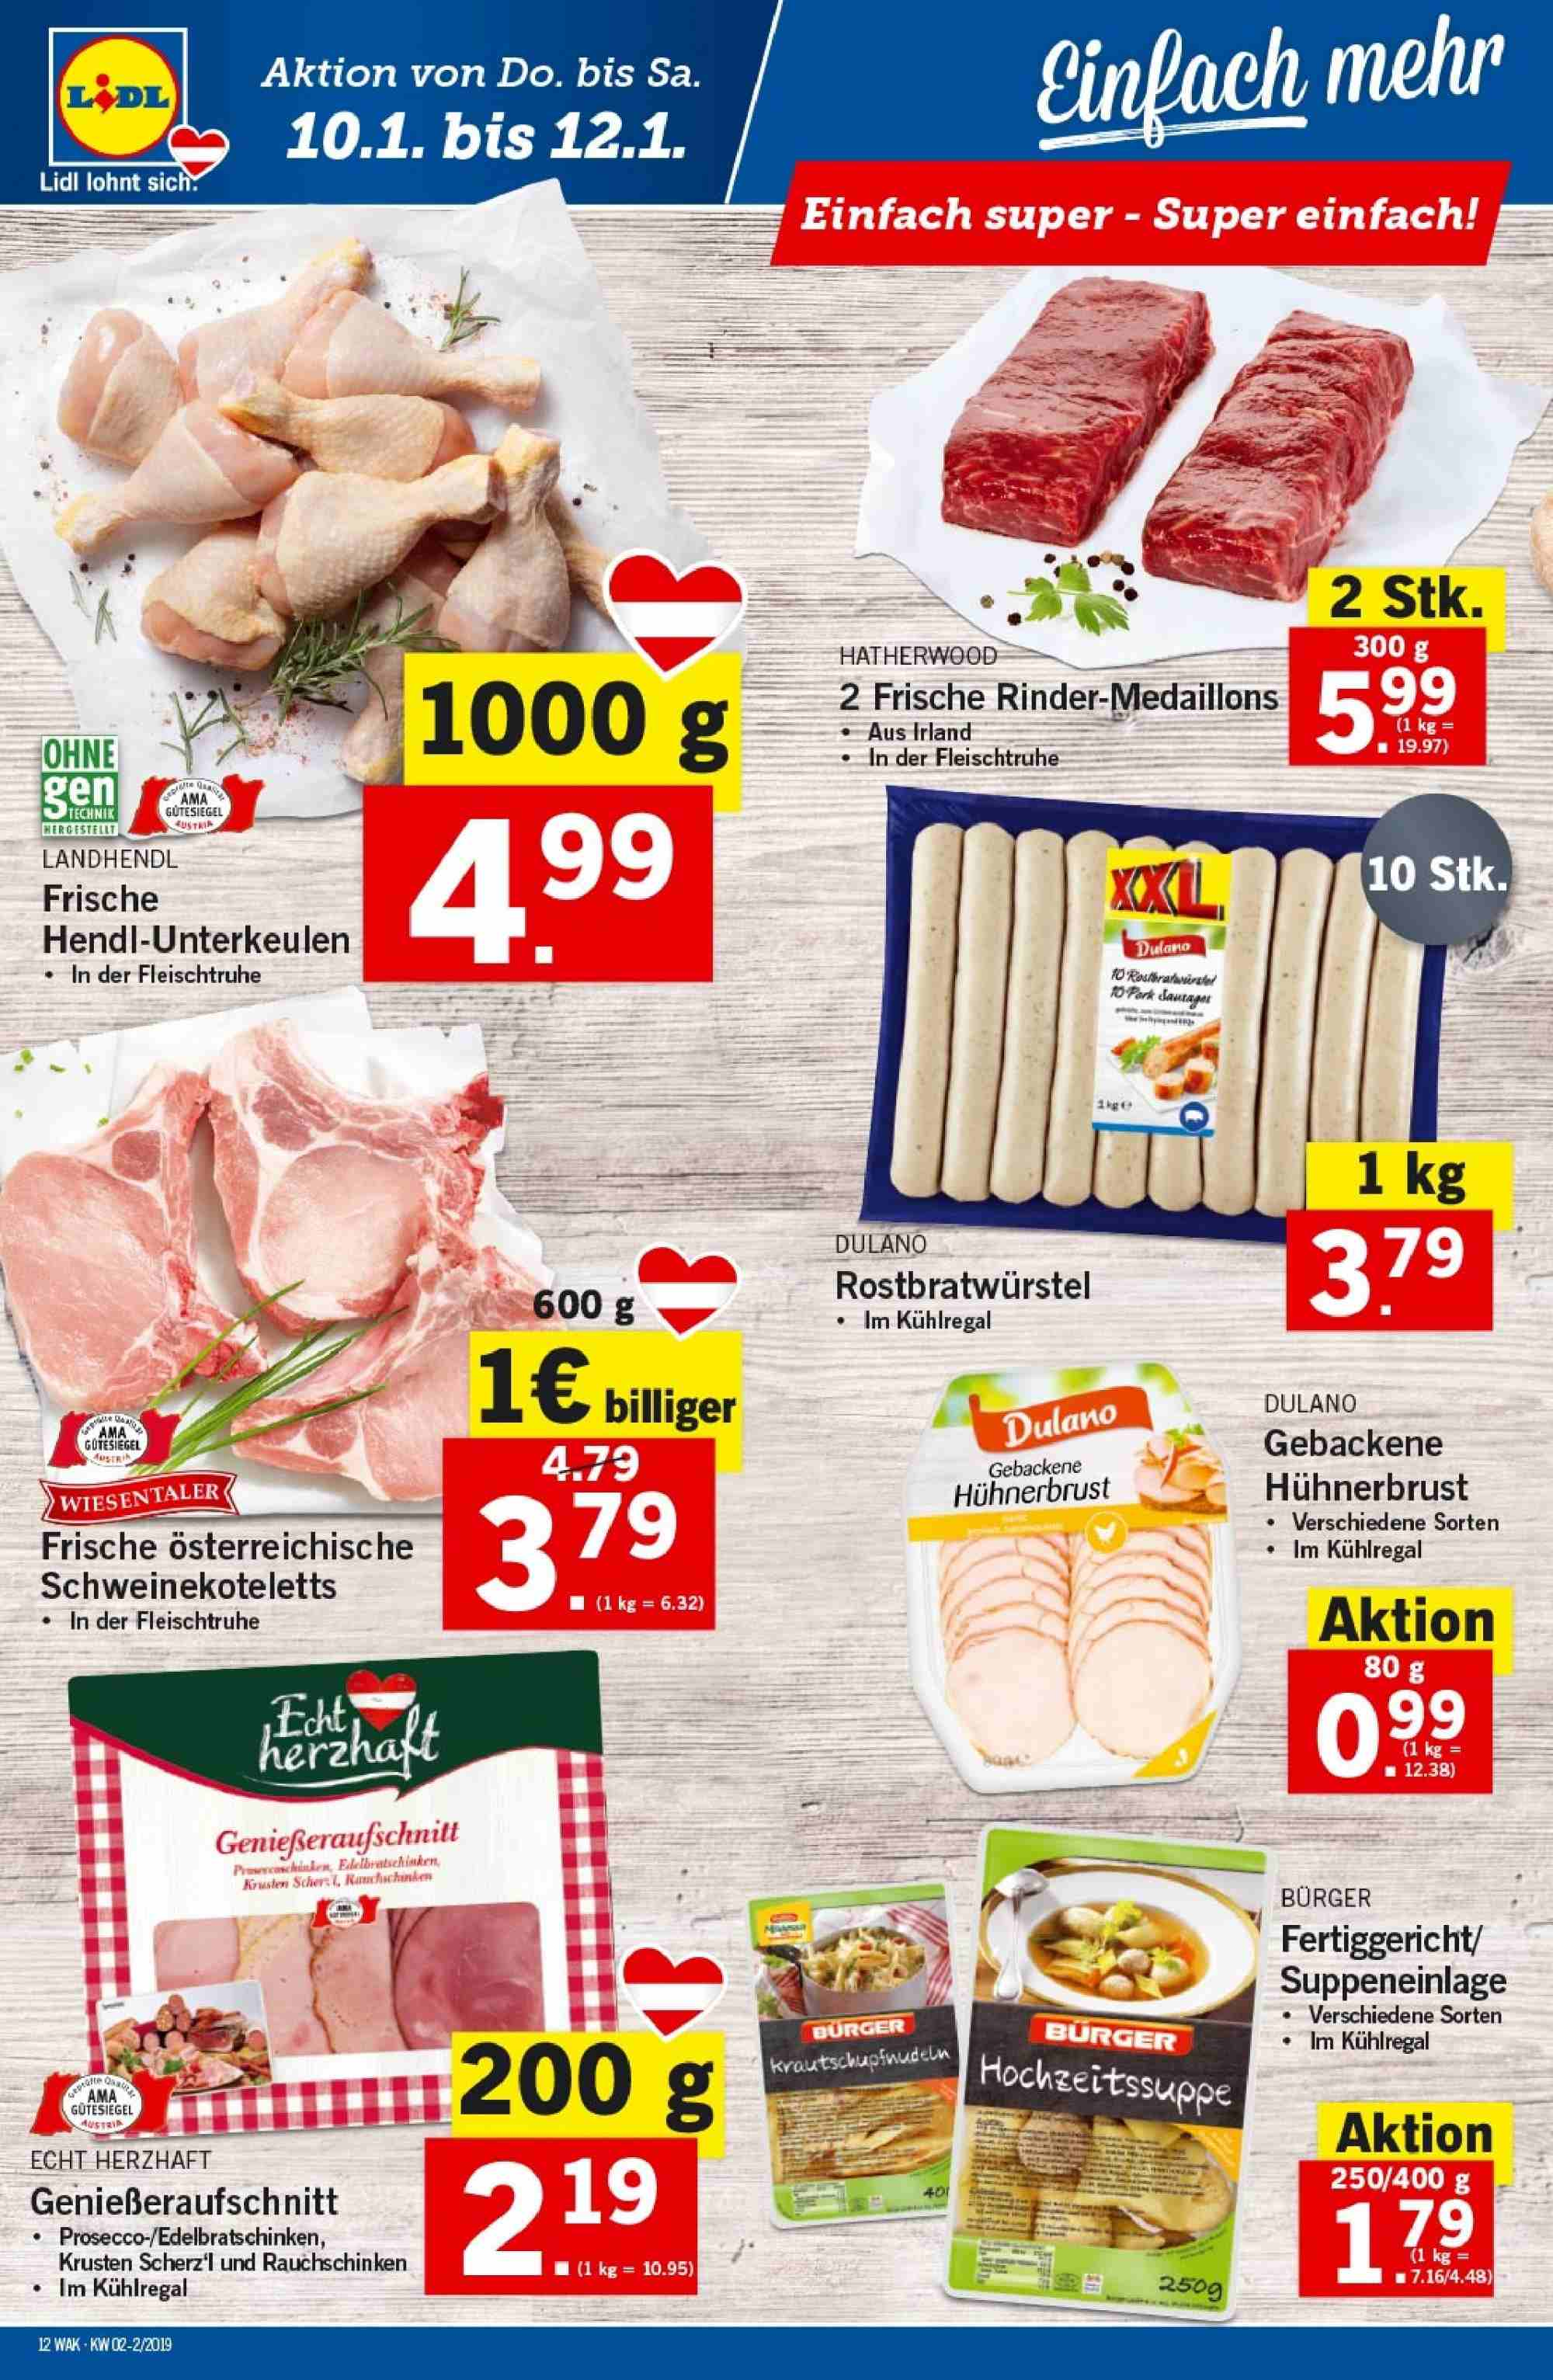 Angebote Lidl - 10.1.2019 - 16.1.2019. Seite 12.